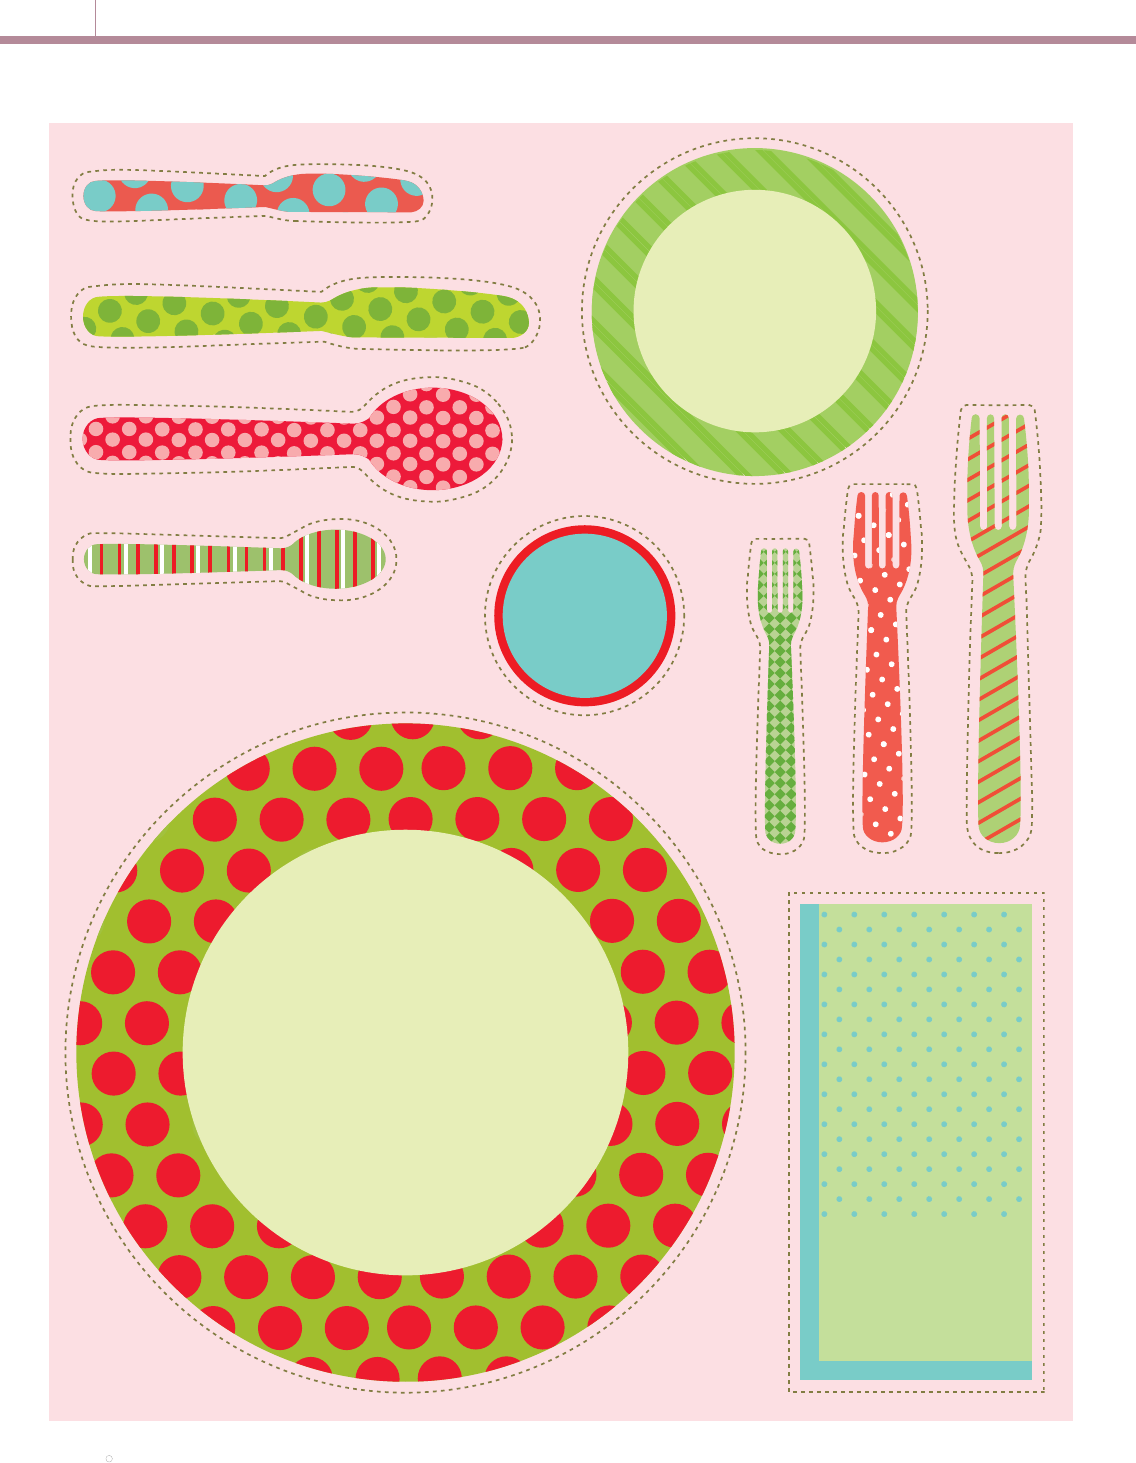 Free Place Setting Practice Template Pdf 165kb 1 Pages